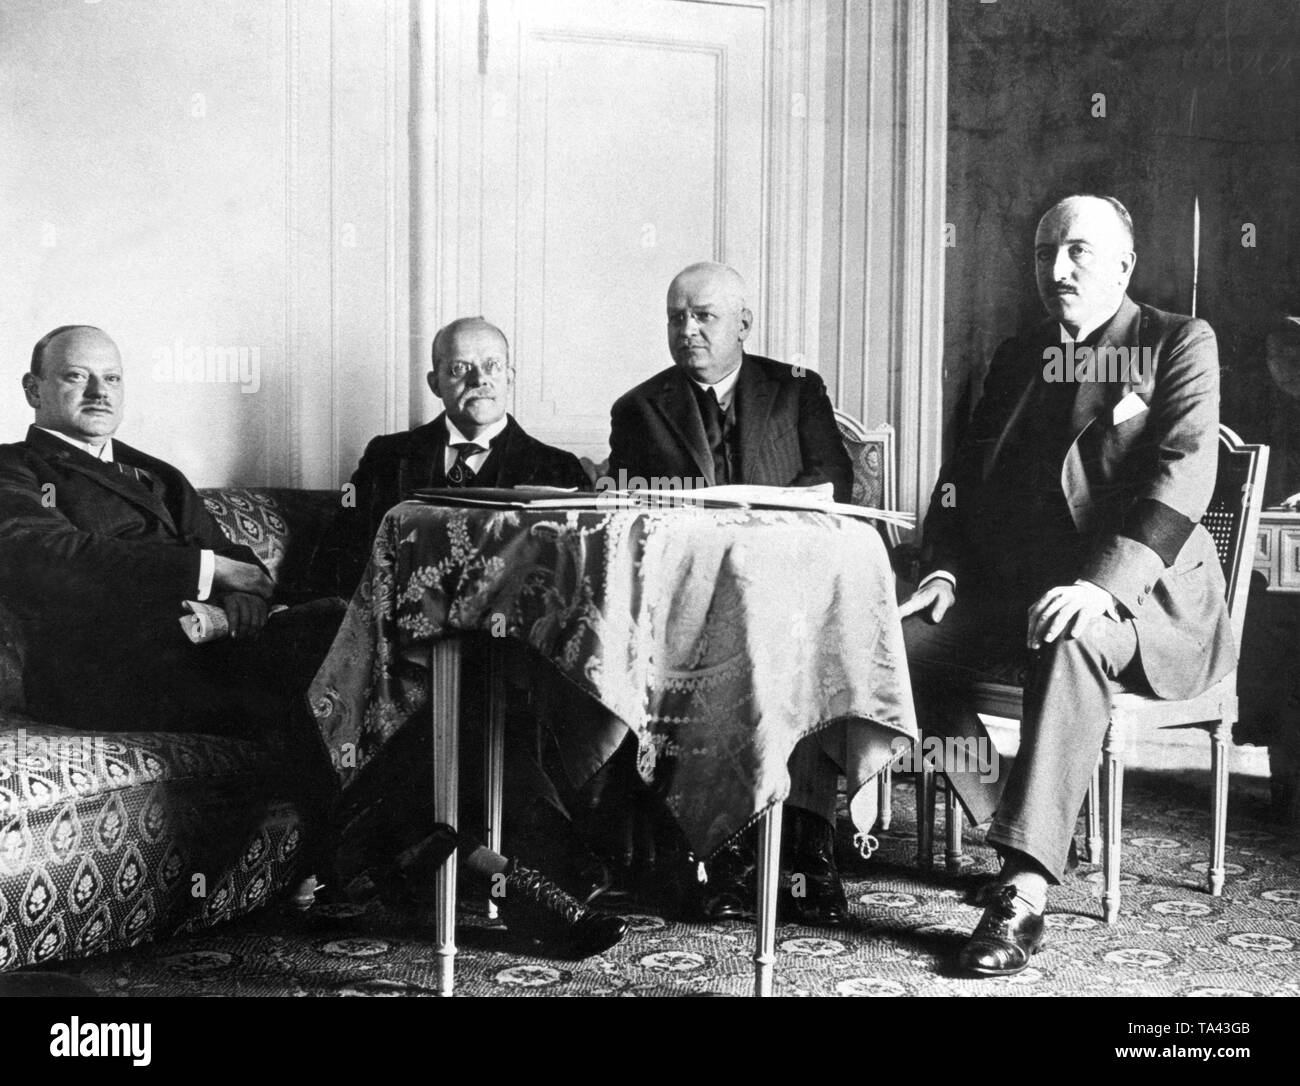 The German delegation at the London conference. Present were from left to right: Foreign Minister Gustav Stresemann, Chancellor Wilhelm Marx, Finance Minister Hans Luther, Secretary of State at the Federal Foreign Office, Carl von Schubert. There they accepted the Dawes plan. - Stock Image